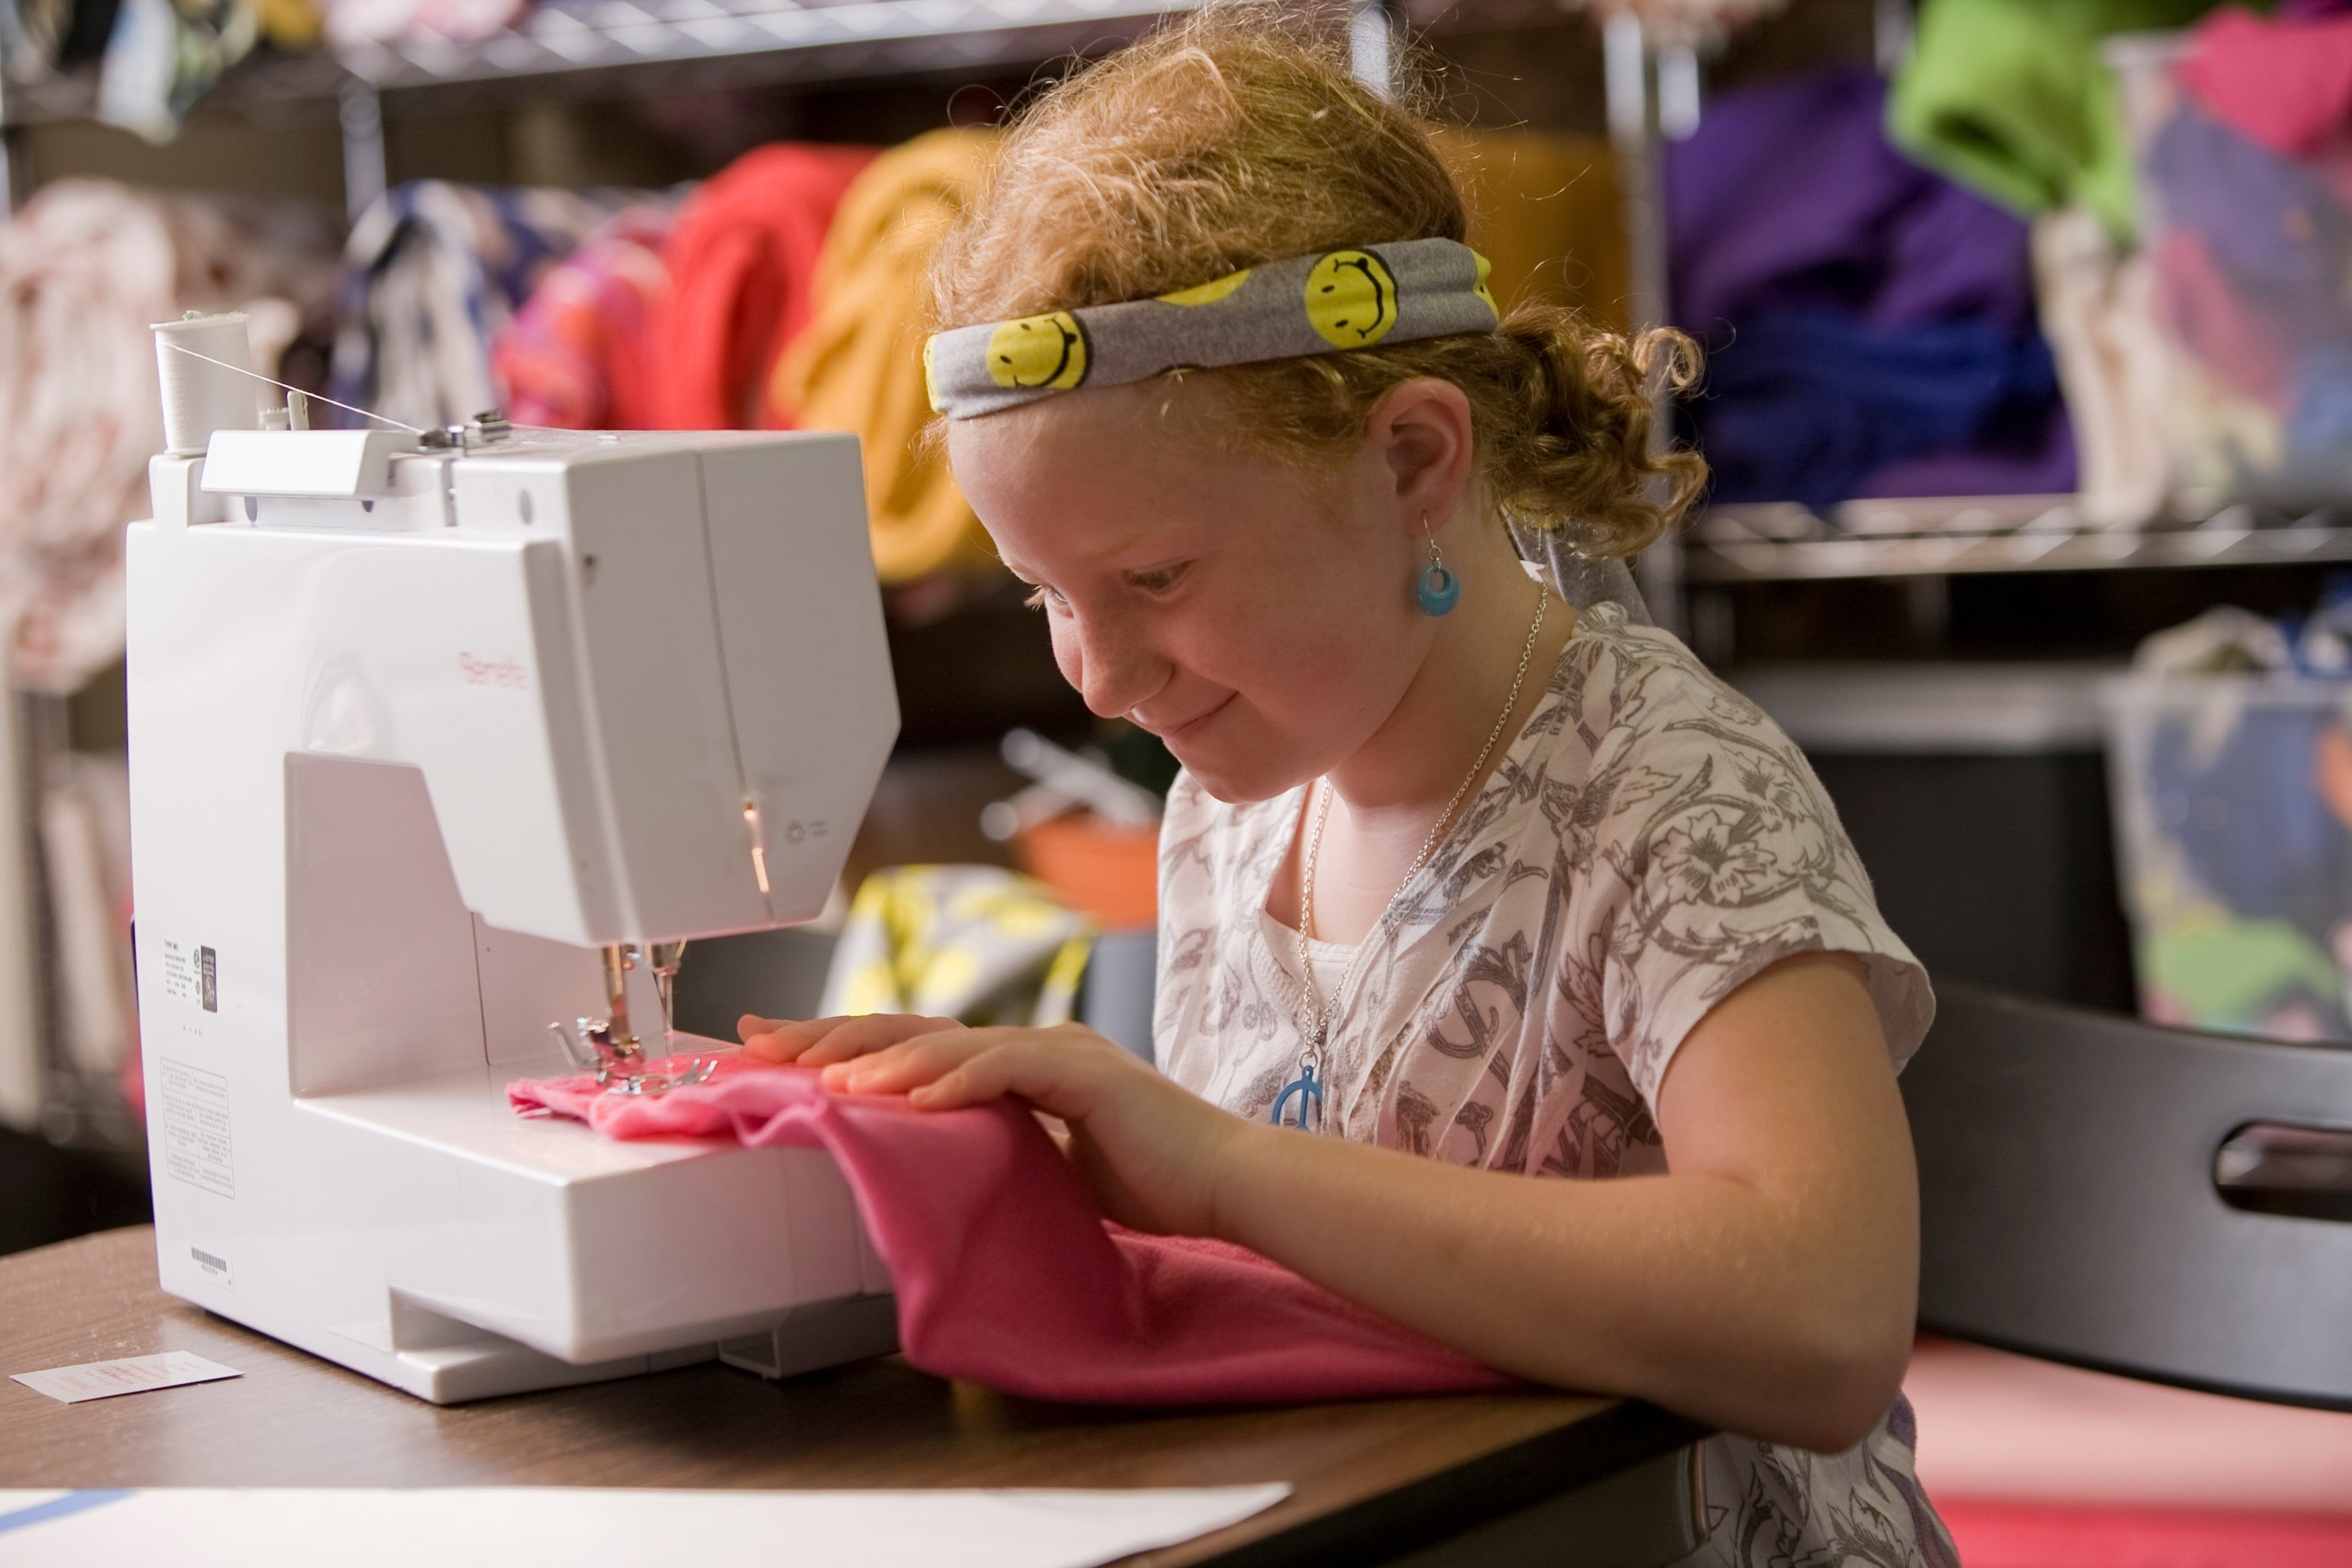 THS-blog-how-sewing-teaches-children-sustainable-living-practices.jpg